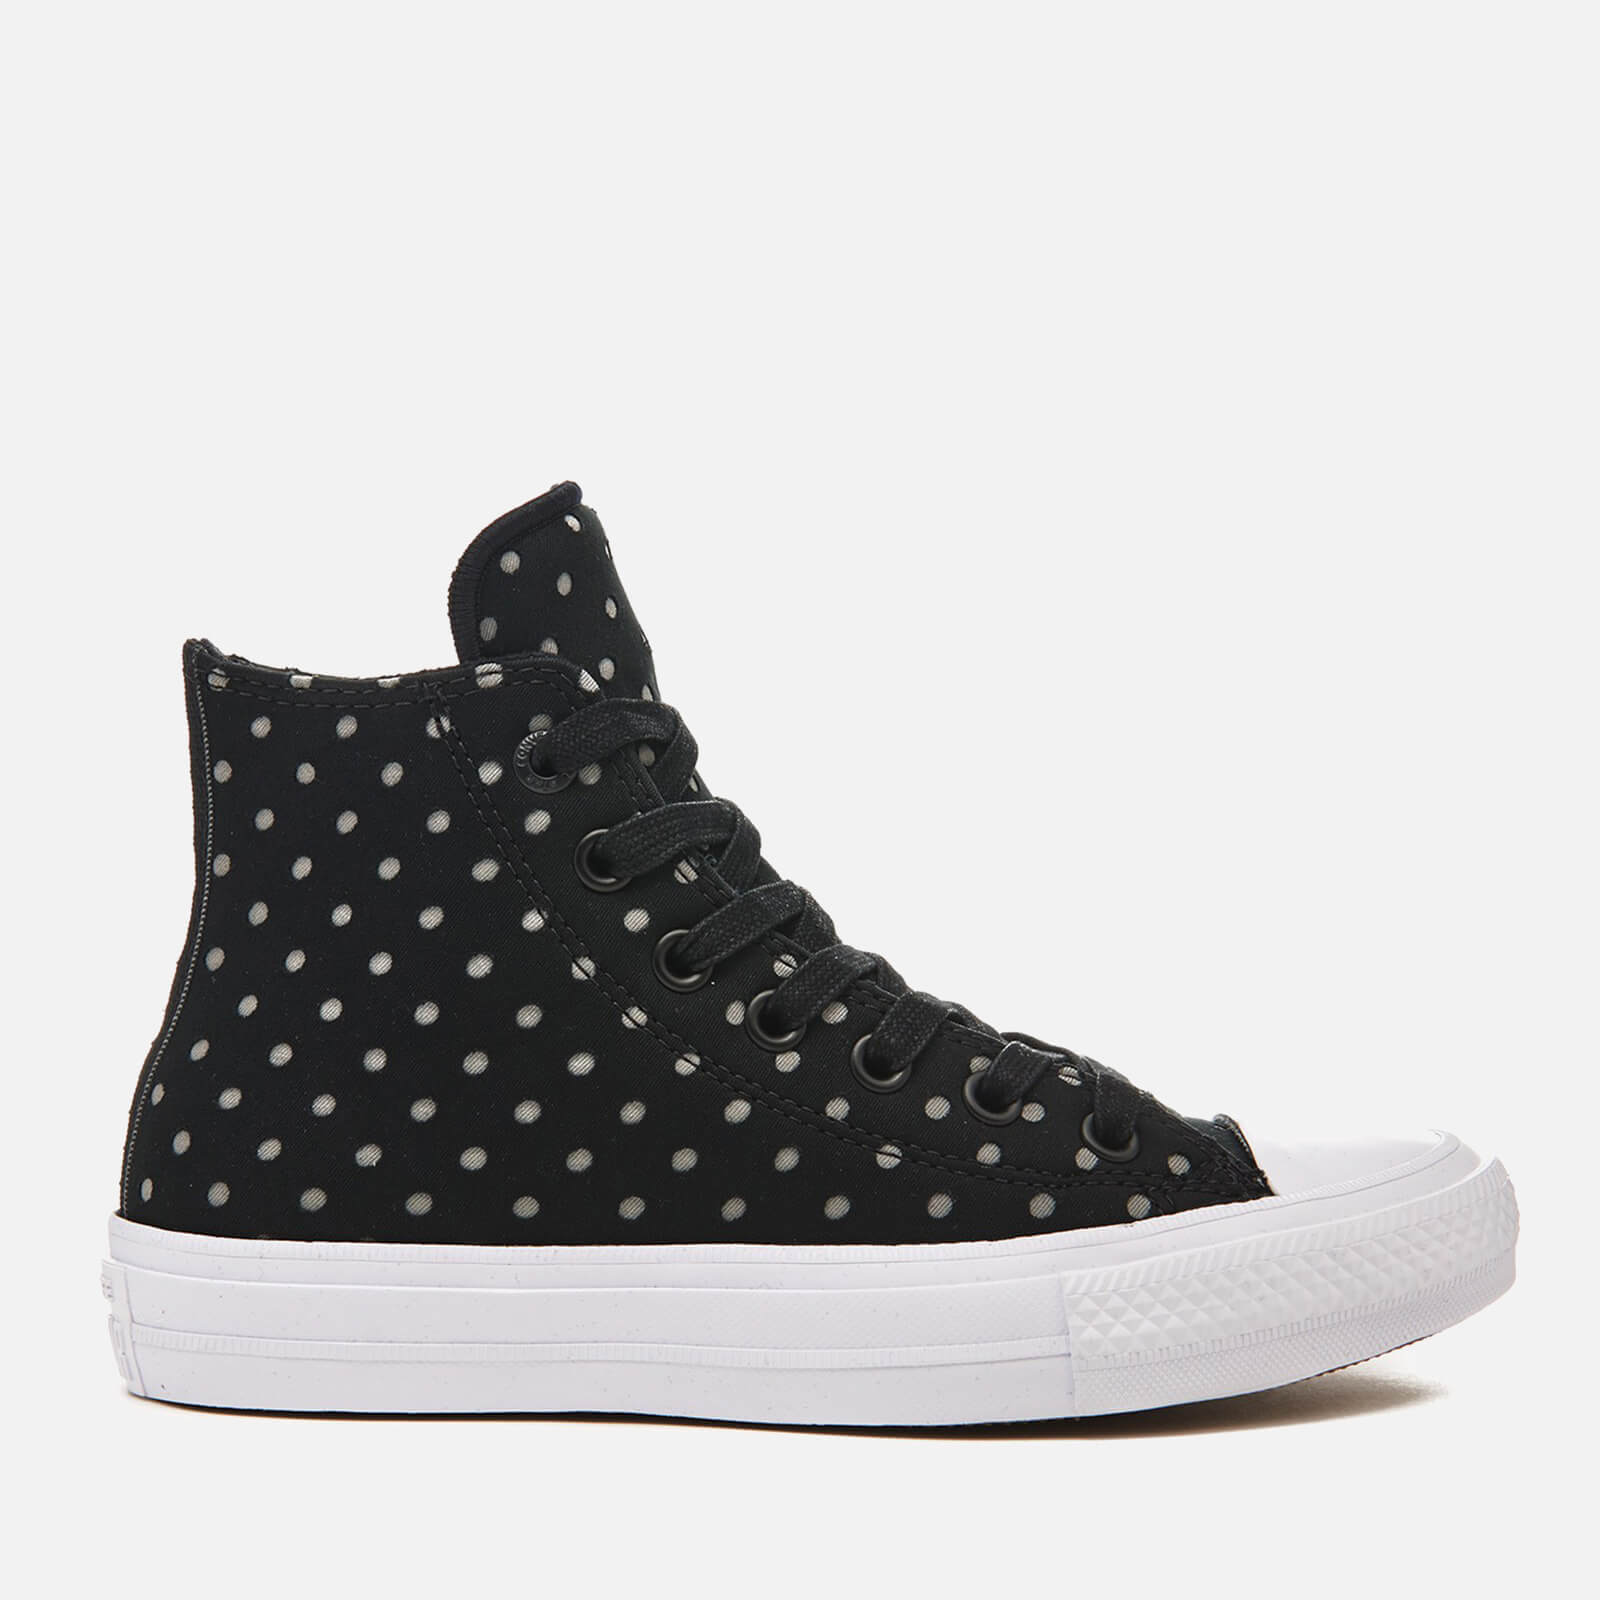 c8fa79c717f5 Converse Women s Chuck Taylor All Star II Hi-Top Trainers - Black Dolphin White  - Free UK Delivery over £50